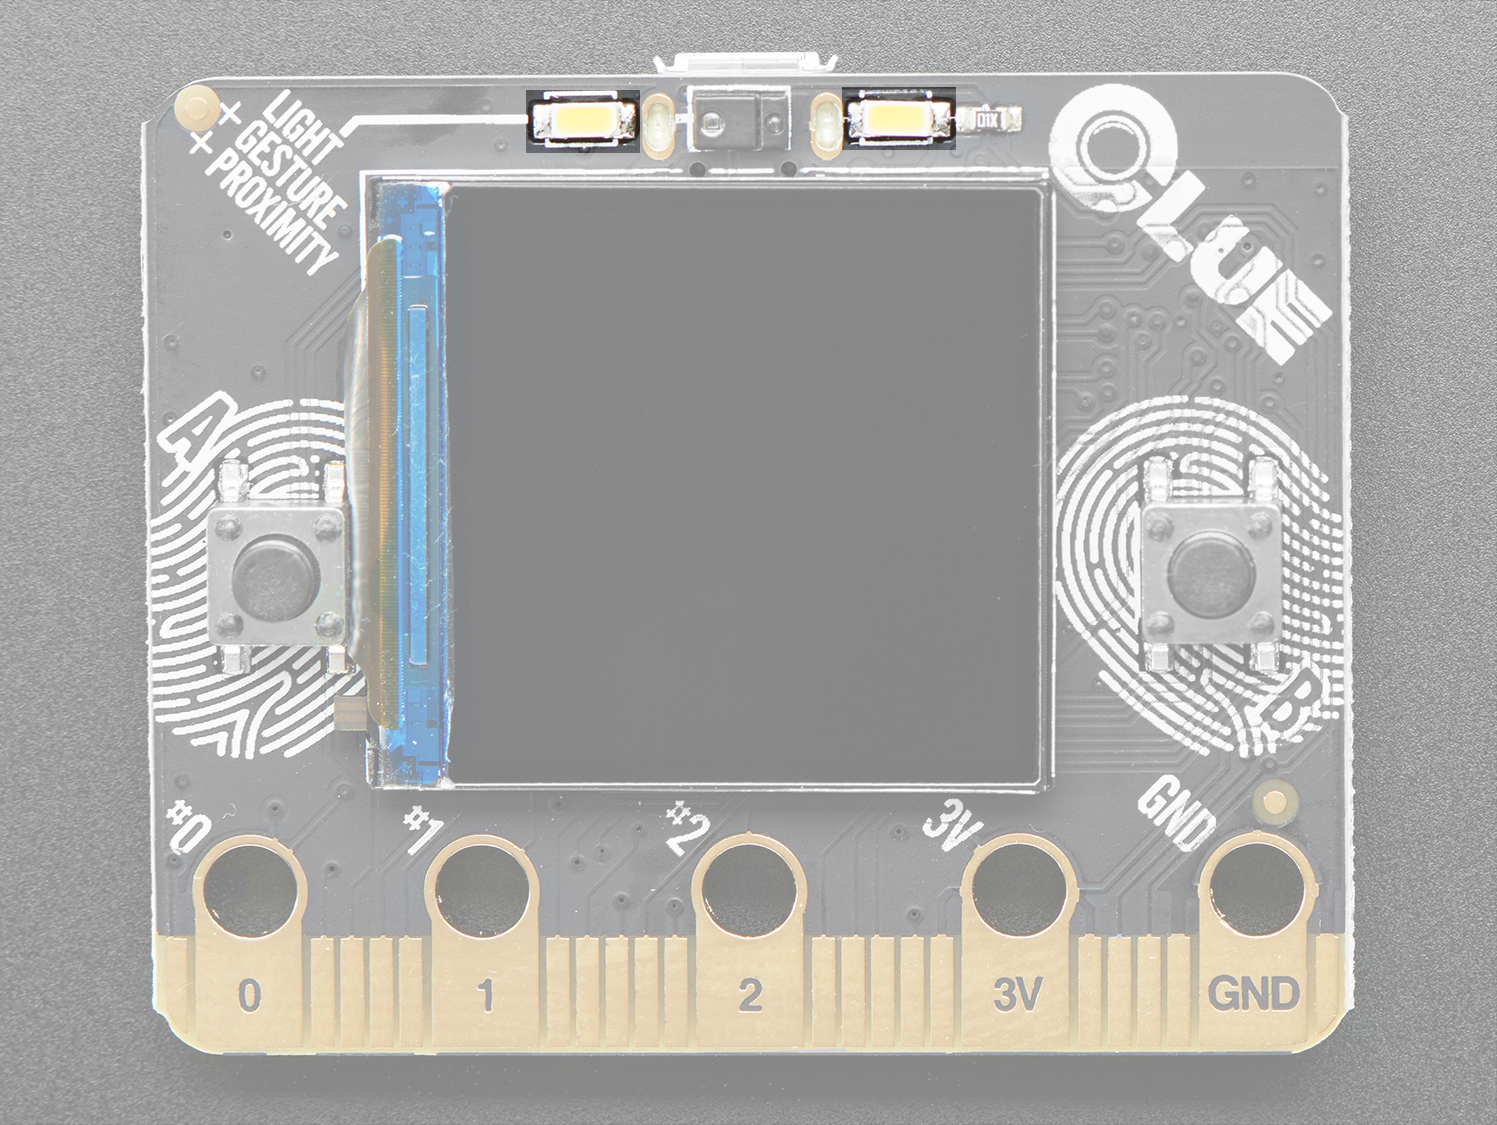 adafruit_products_Clue_top_pinouts_white_LEDs.png